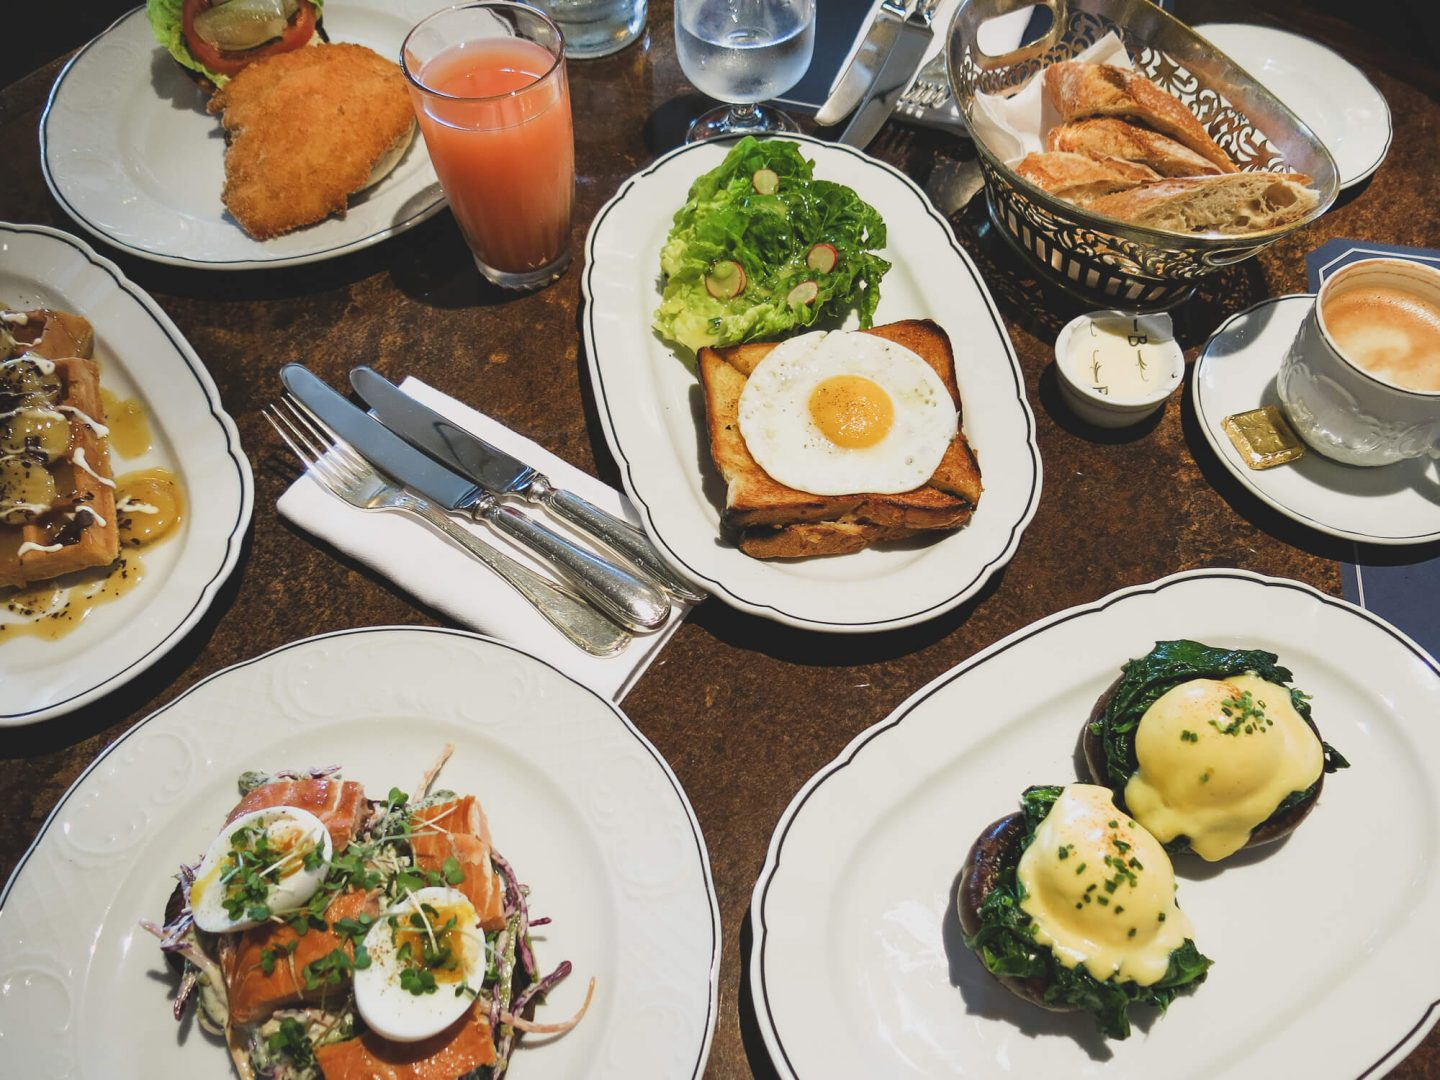 Brunch at Bellanger on Islington Green. Poached eggs, salmon, croque madame, banana waffles. | www.dalton-banks.co.uk